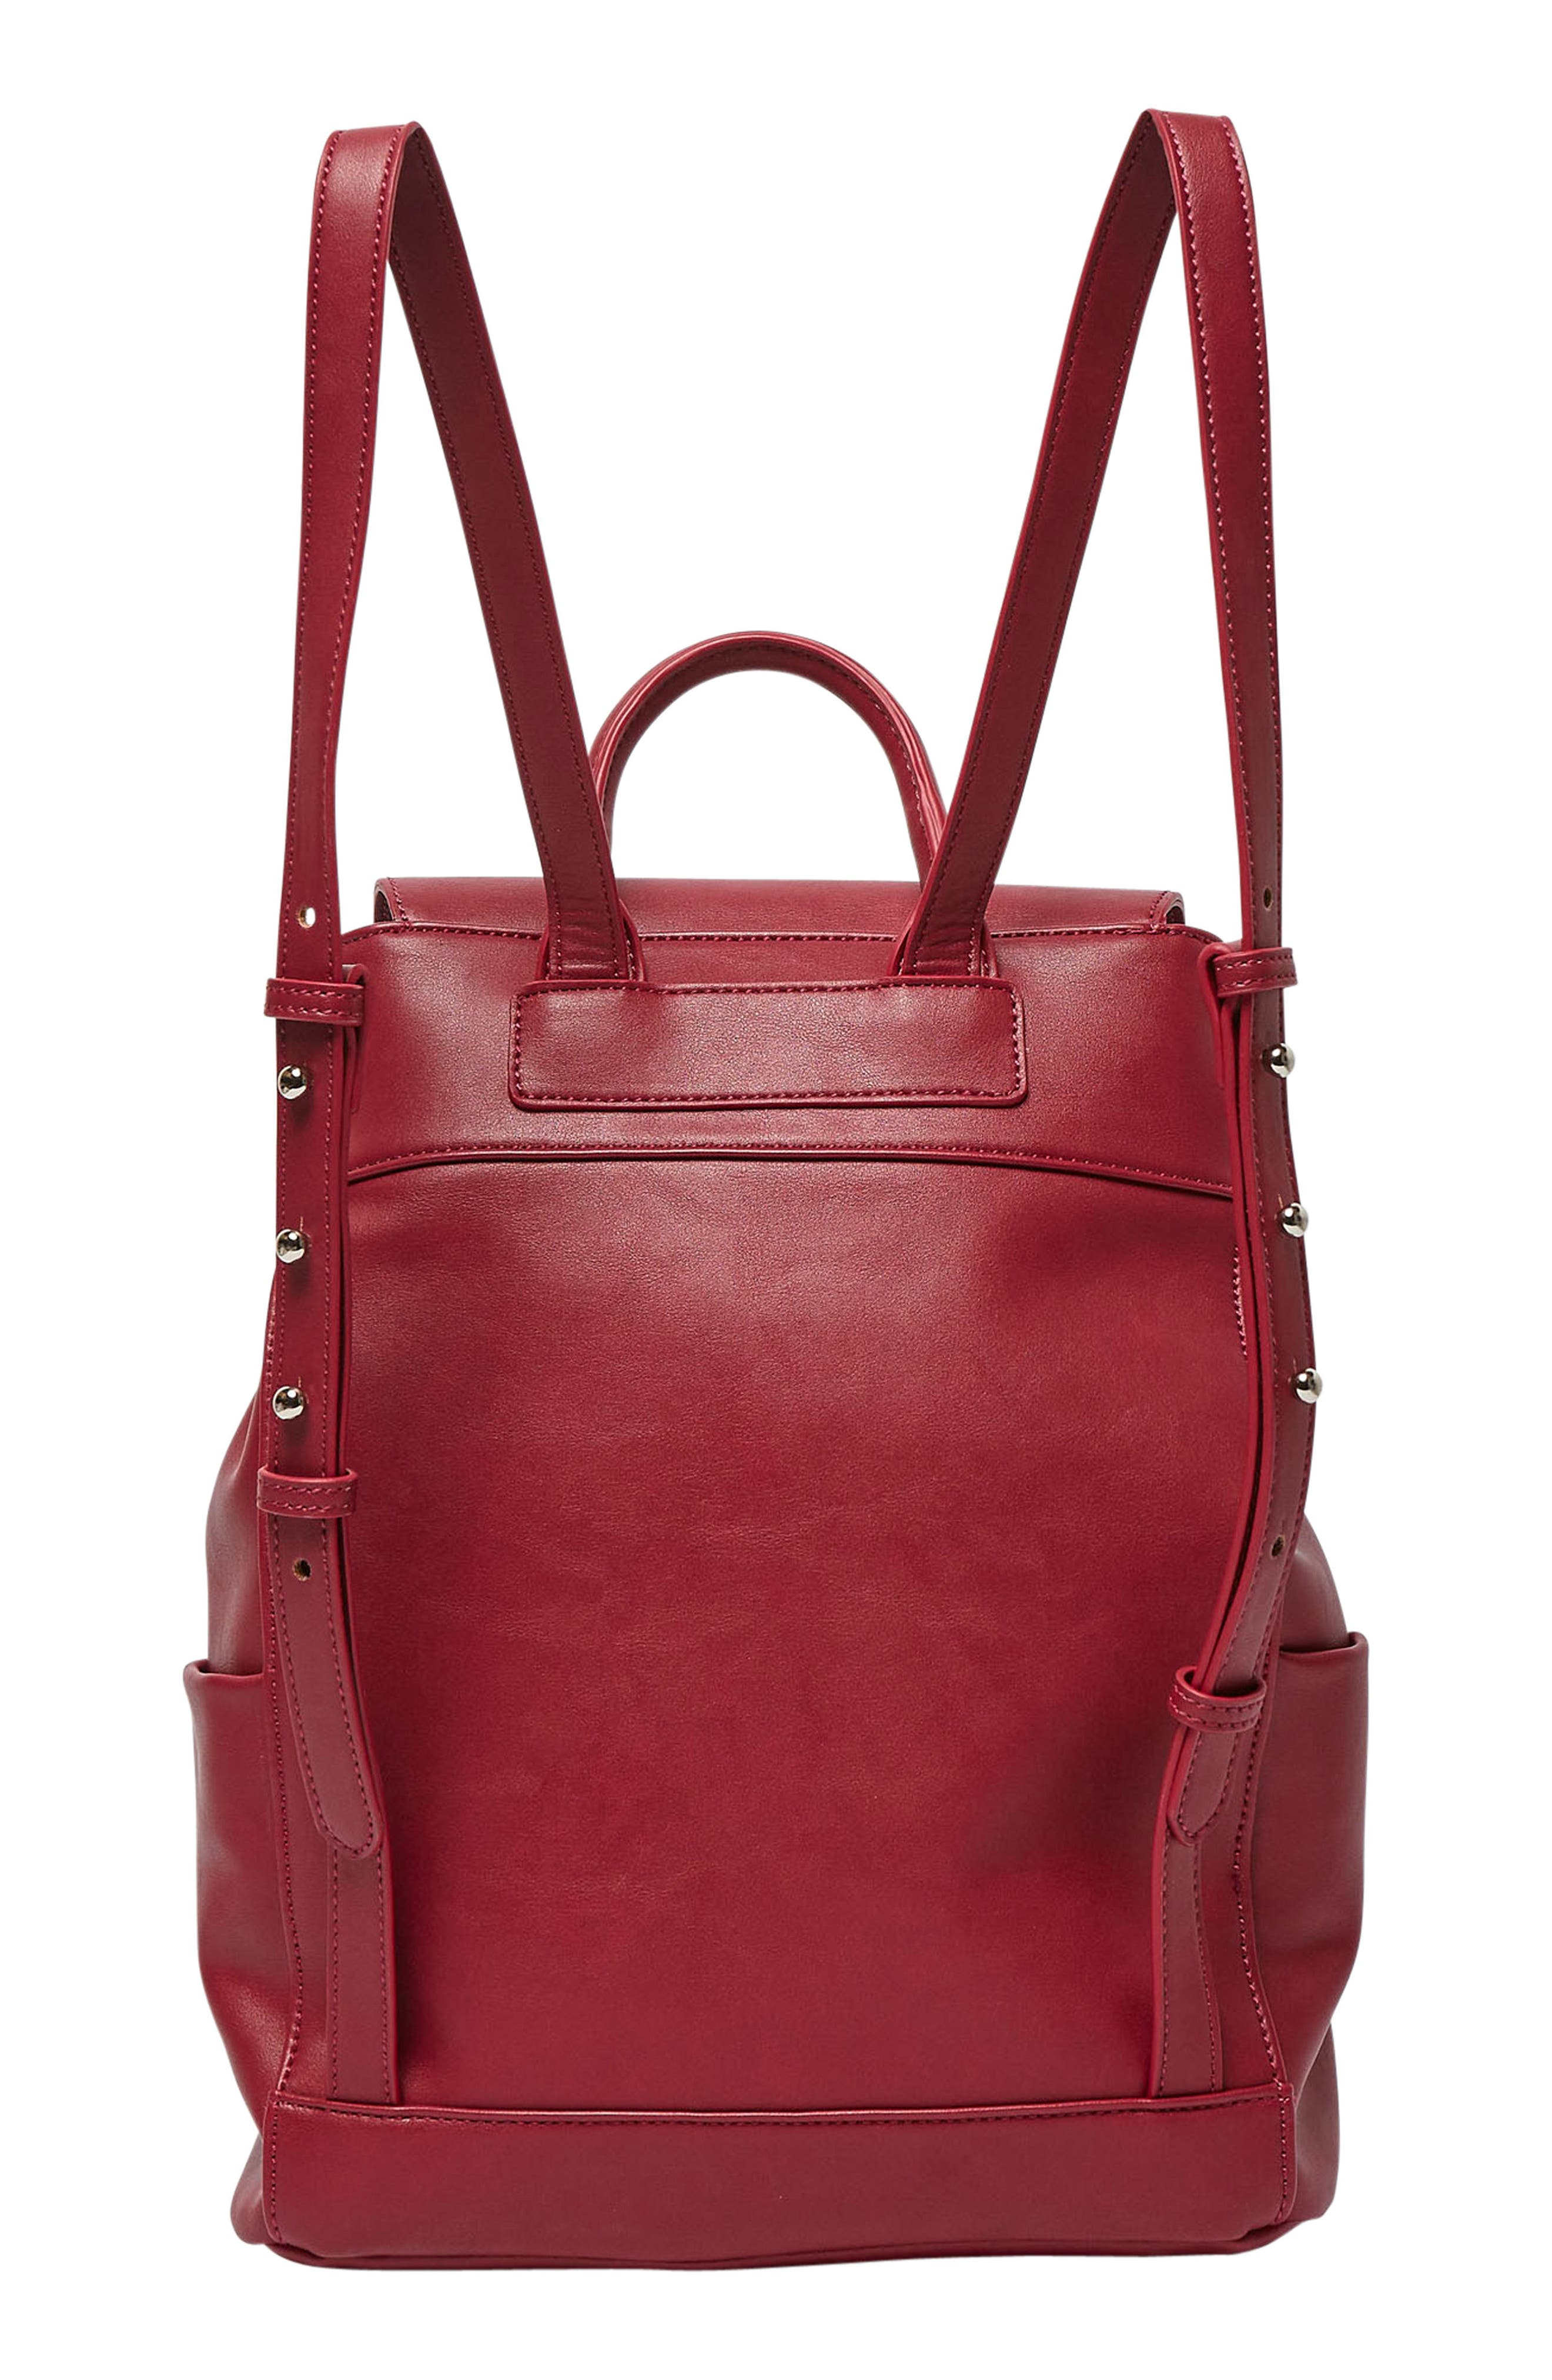 Splendour Vegan Leather Backpack,                             Alternate thumbnail 4, color,                             Cranberry